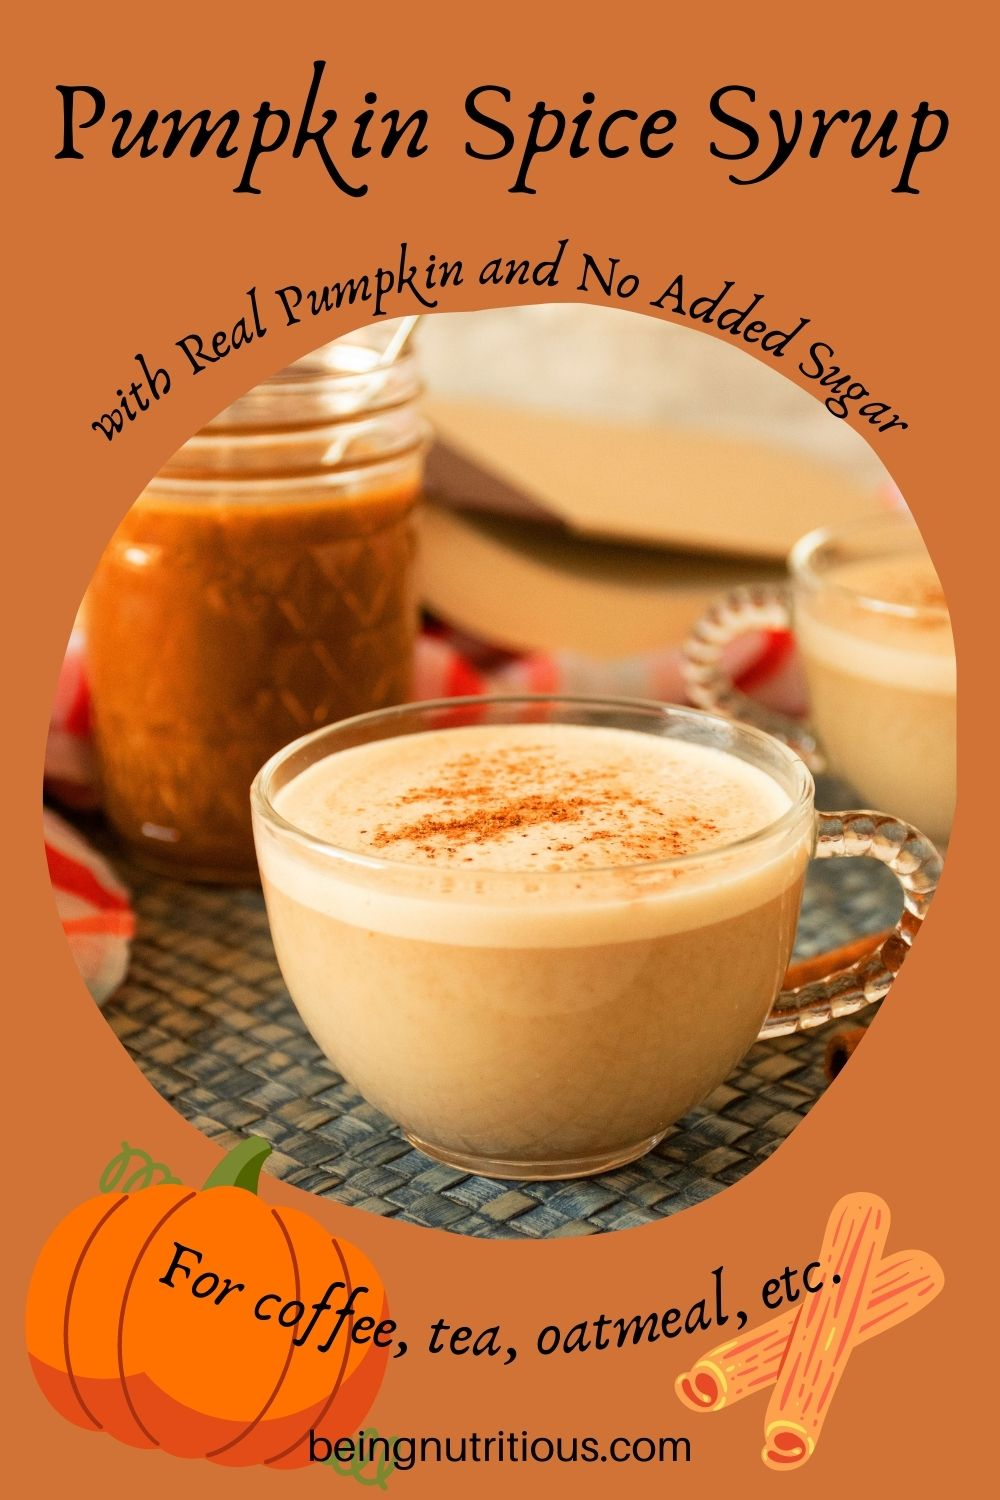 Small cup of a latte with a jar of pumpkin spice syrup in the background. Text around picture: Pumpkin Spice Syrup with real pumpkin and no added sugar. For coffee, tea, oatmeal, etc.